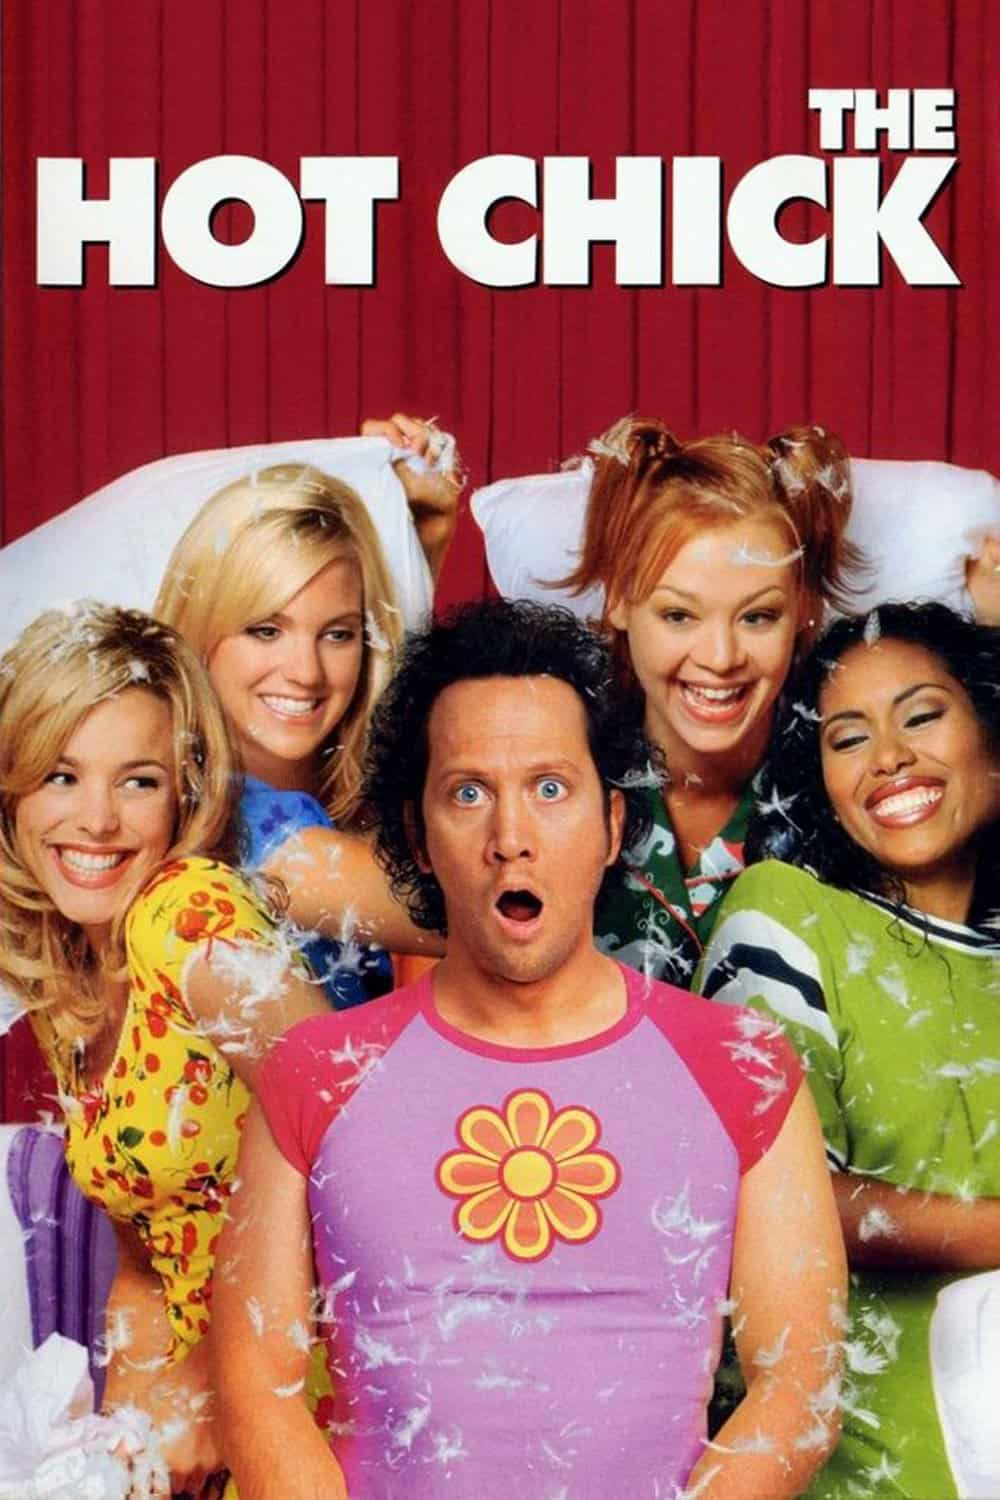 The Hot Chick, 2002